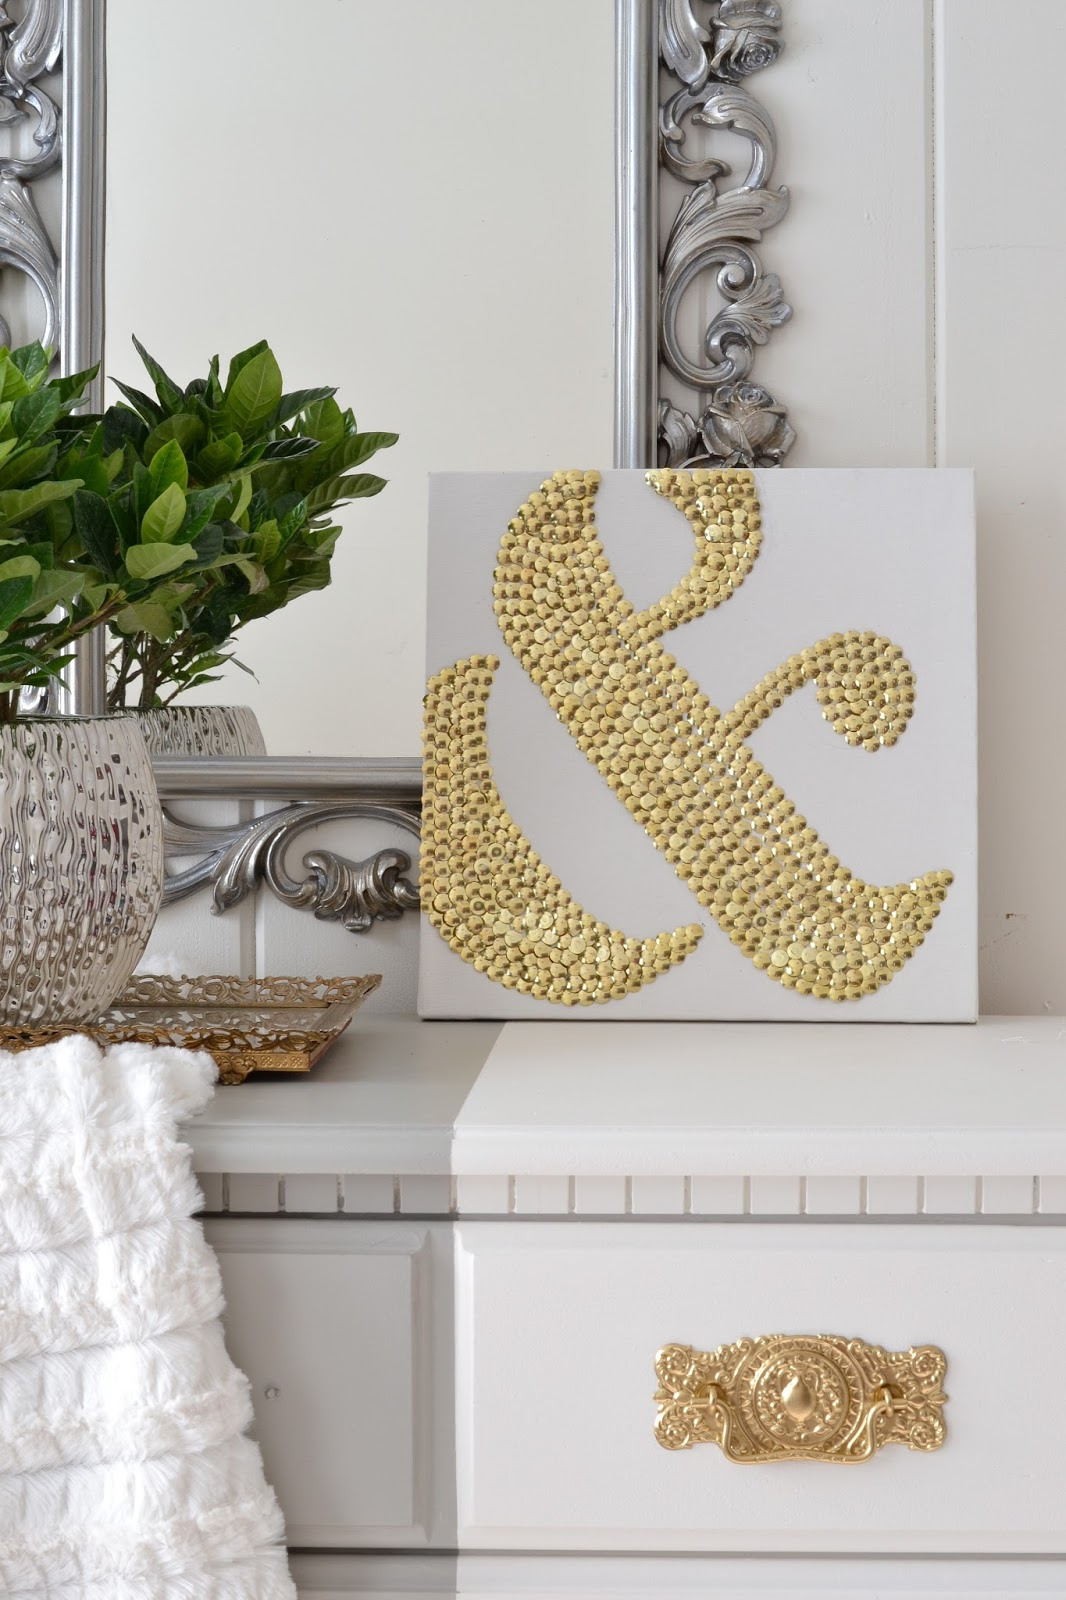 Ampersand Art